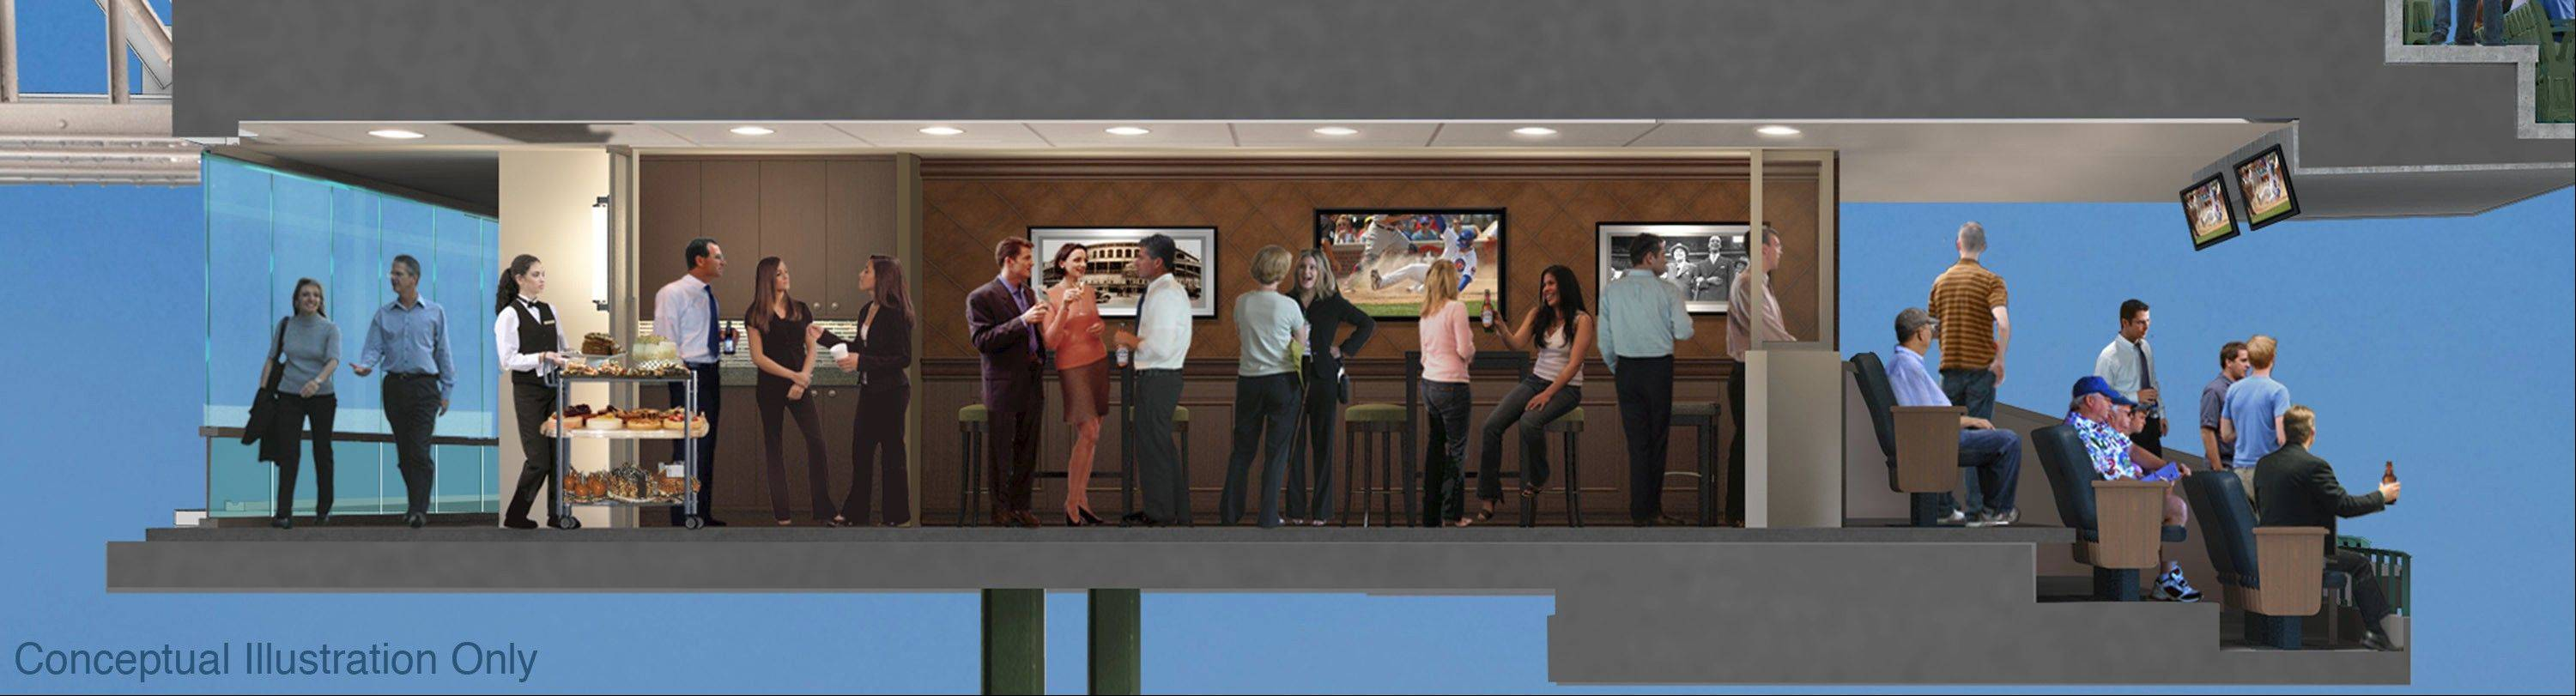 This is a view of the proposed expanded suite area.